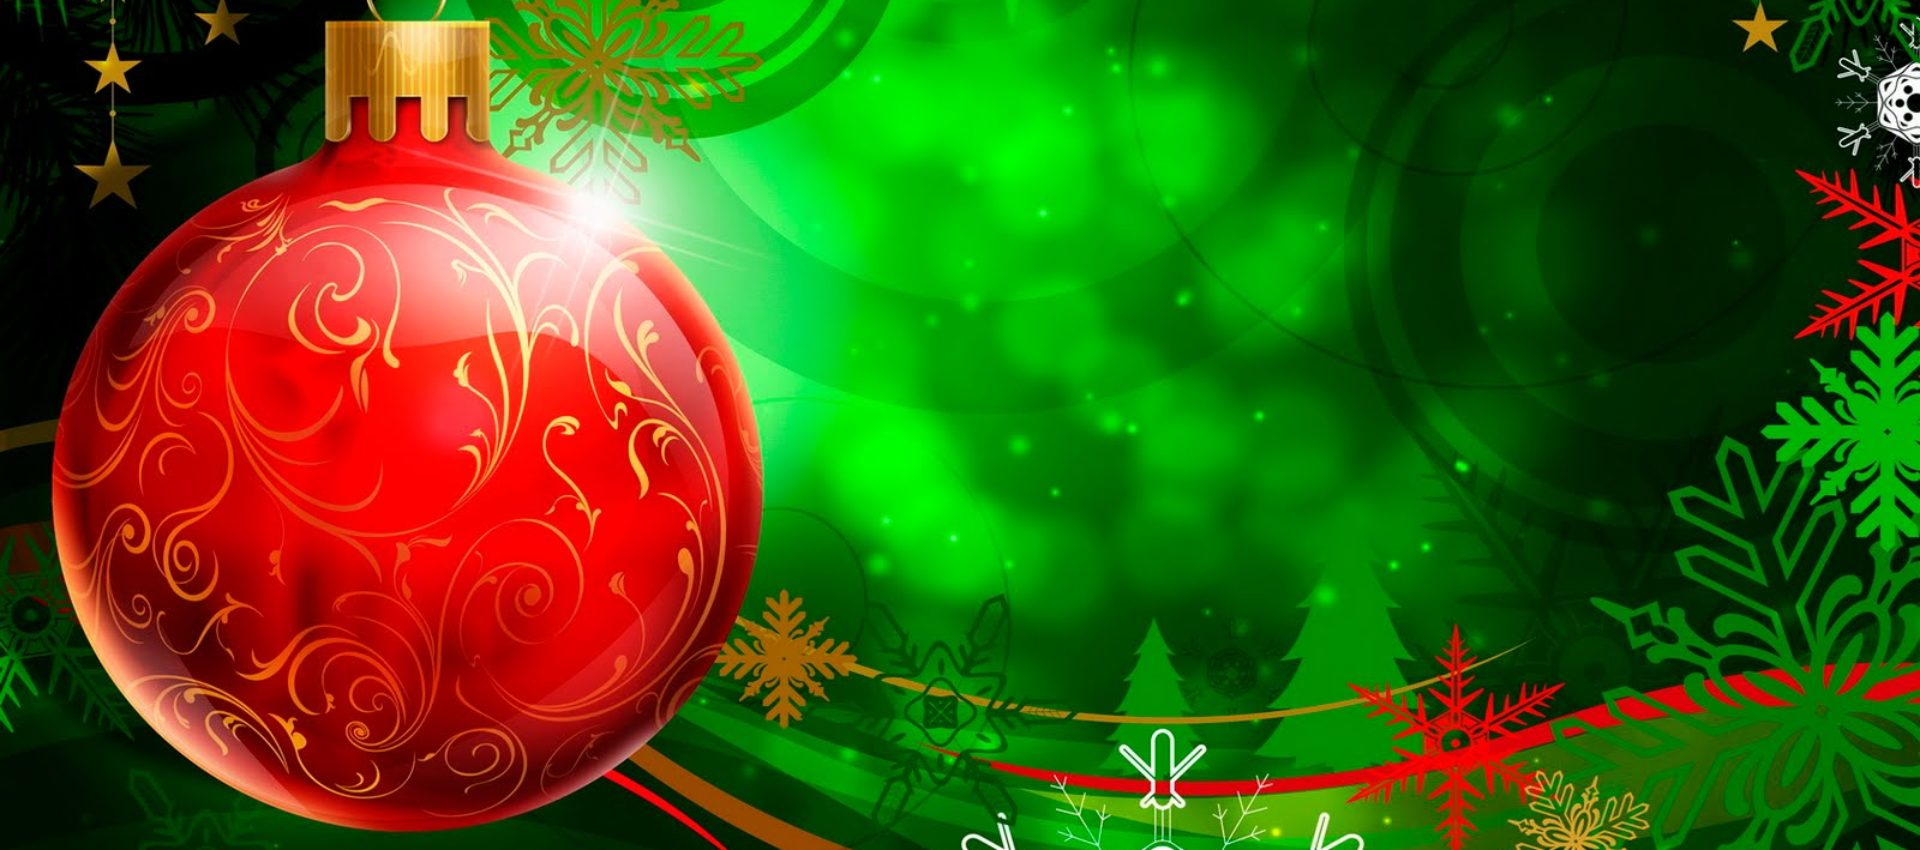 cropped-Xmas-Wallpaper-HD.jpg